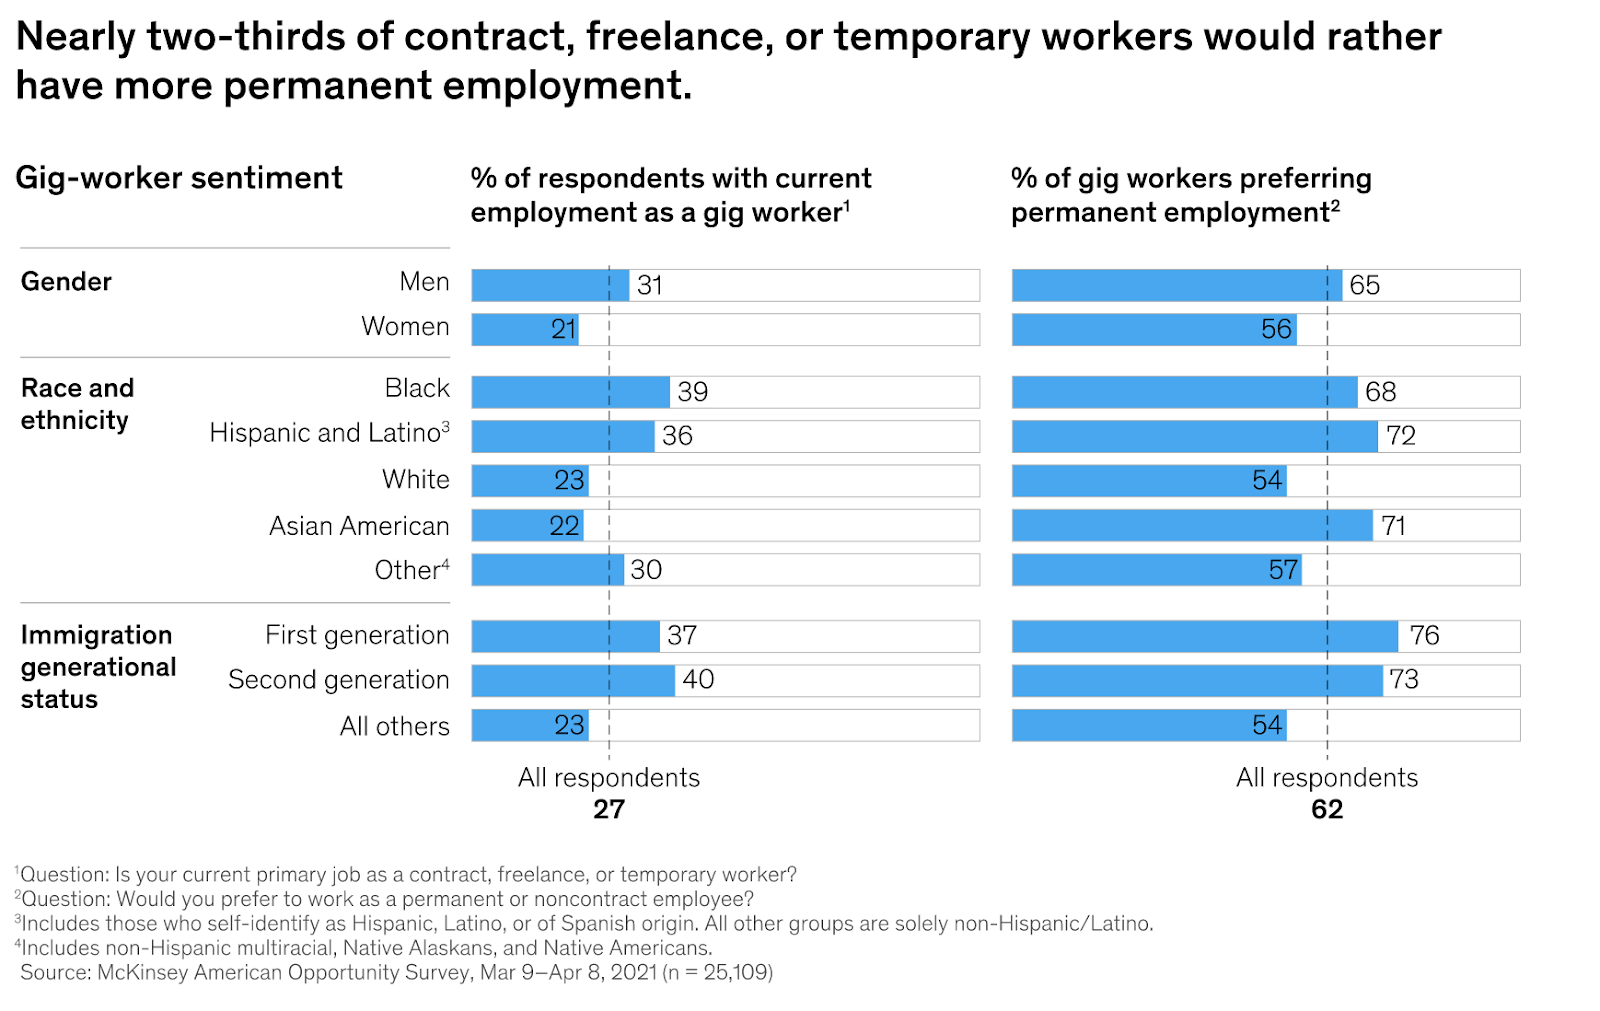 charts showing that contract, freelance, and temporary workers would overwhelmingly prefer permanent employment